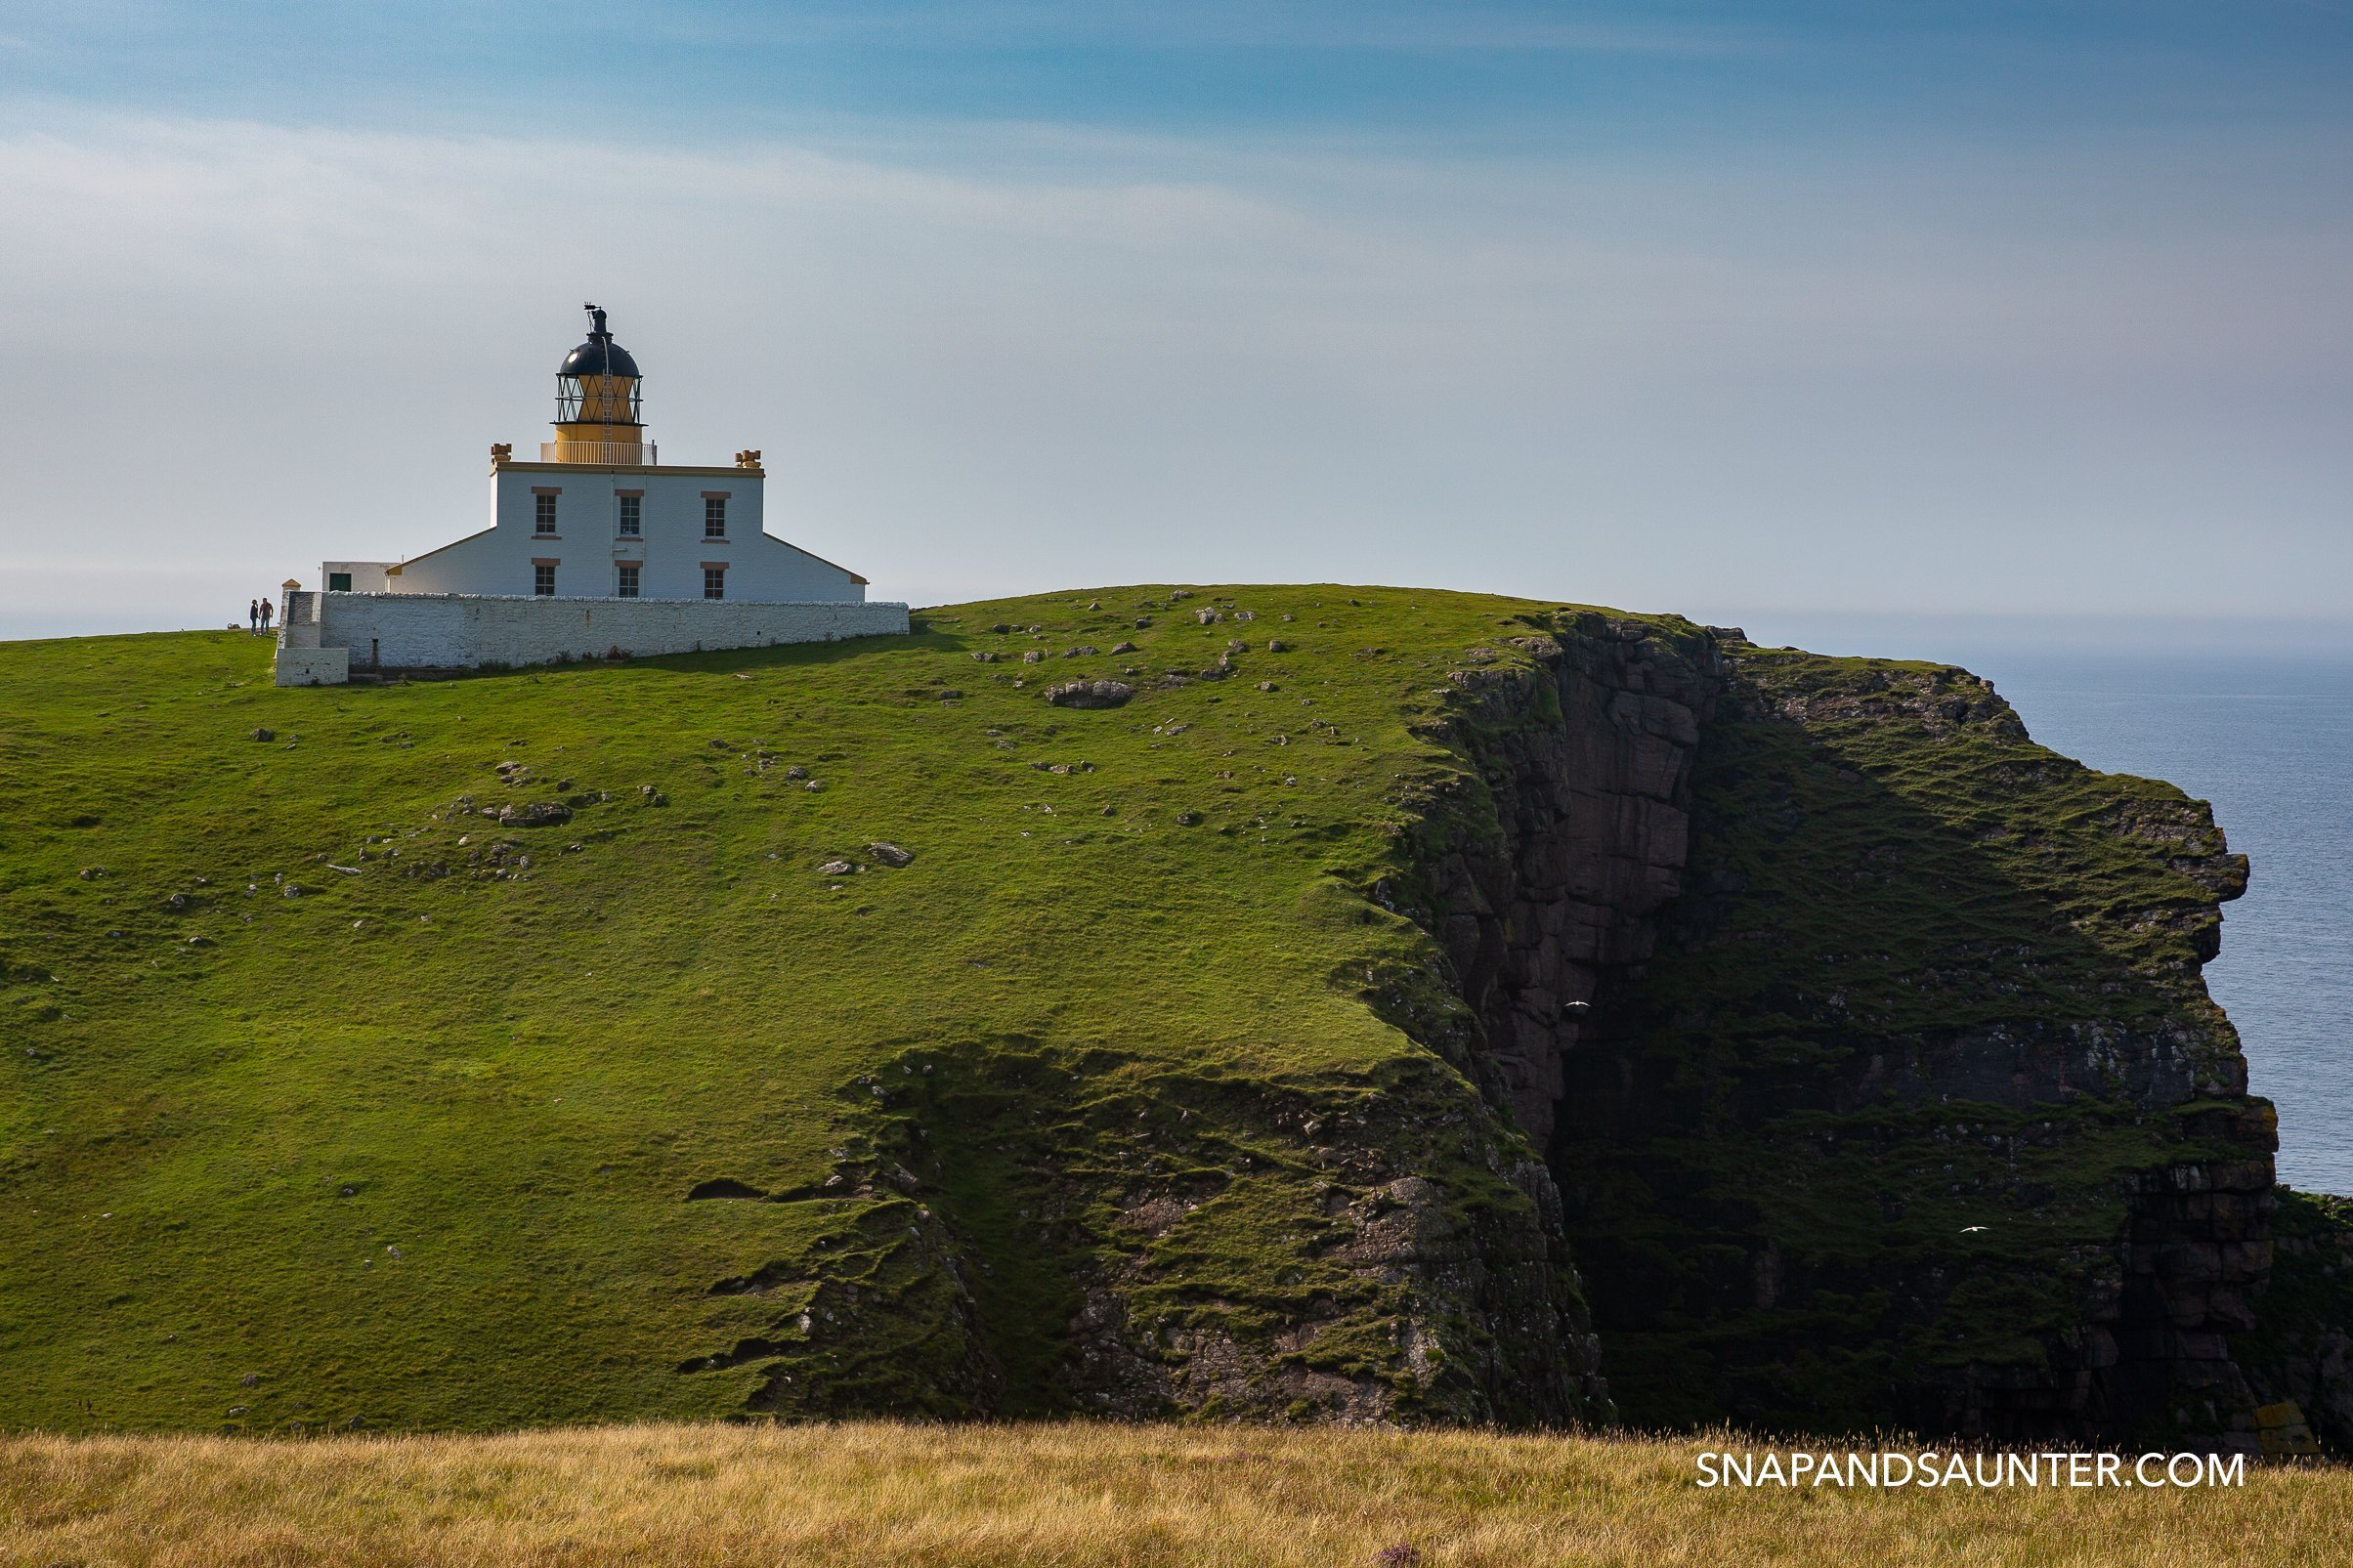 Stoer Lighthouse on the North Coast 500 route in Scotland